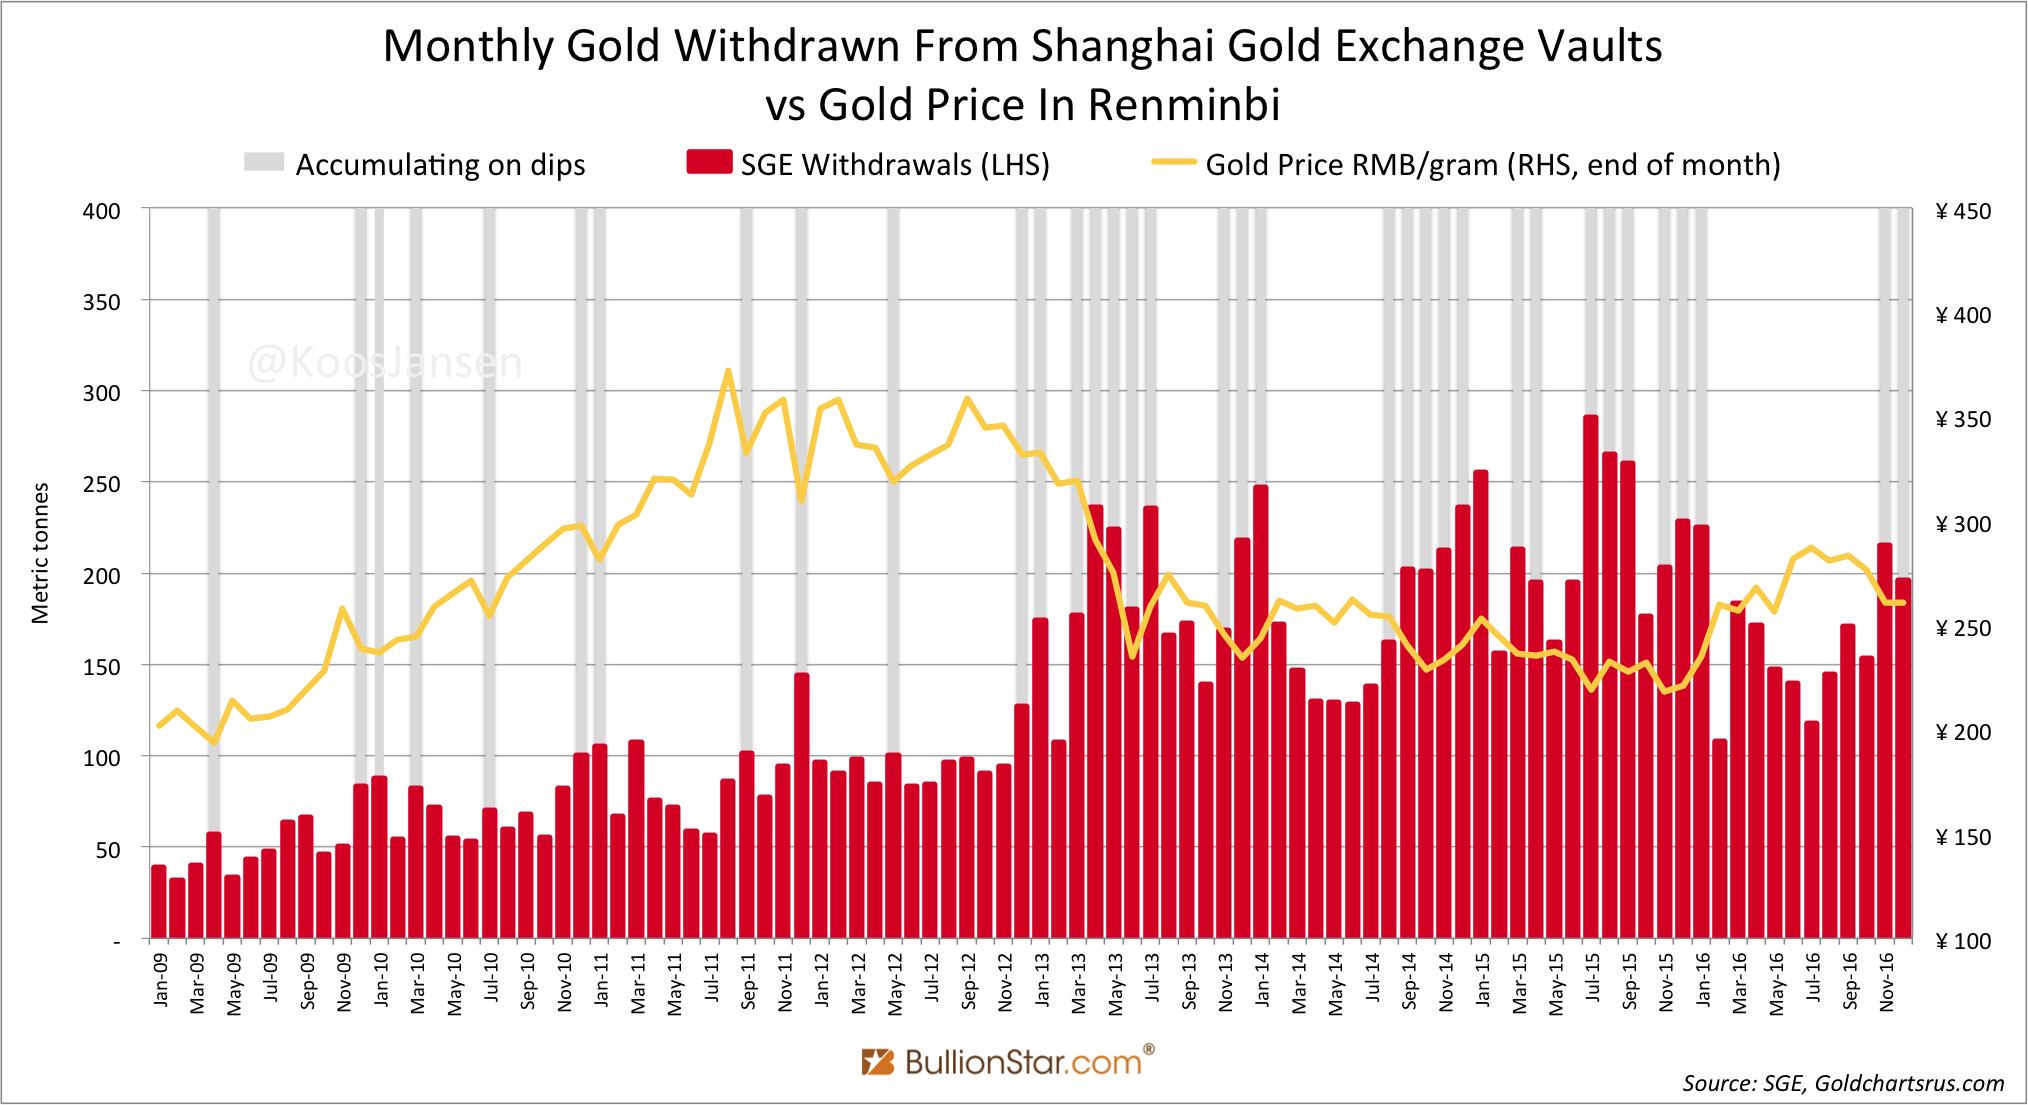 Monthly Gold Withdrawn From Shanghai Exchange Vaults